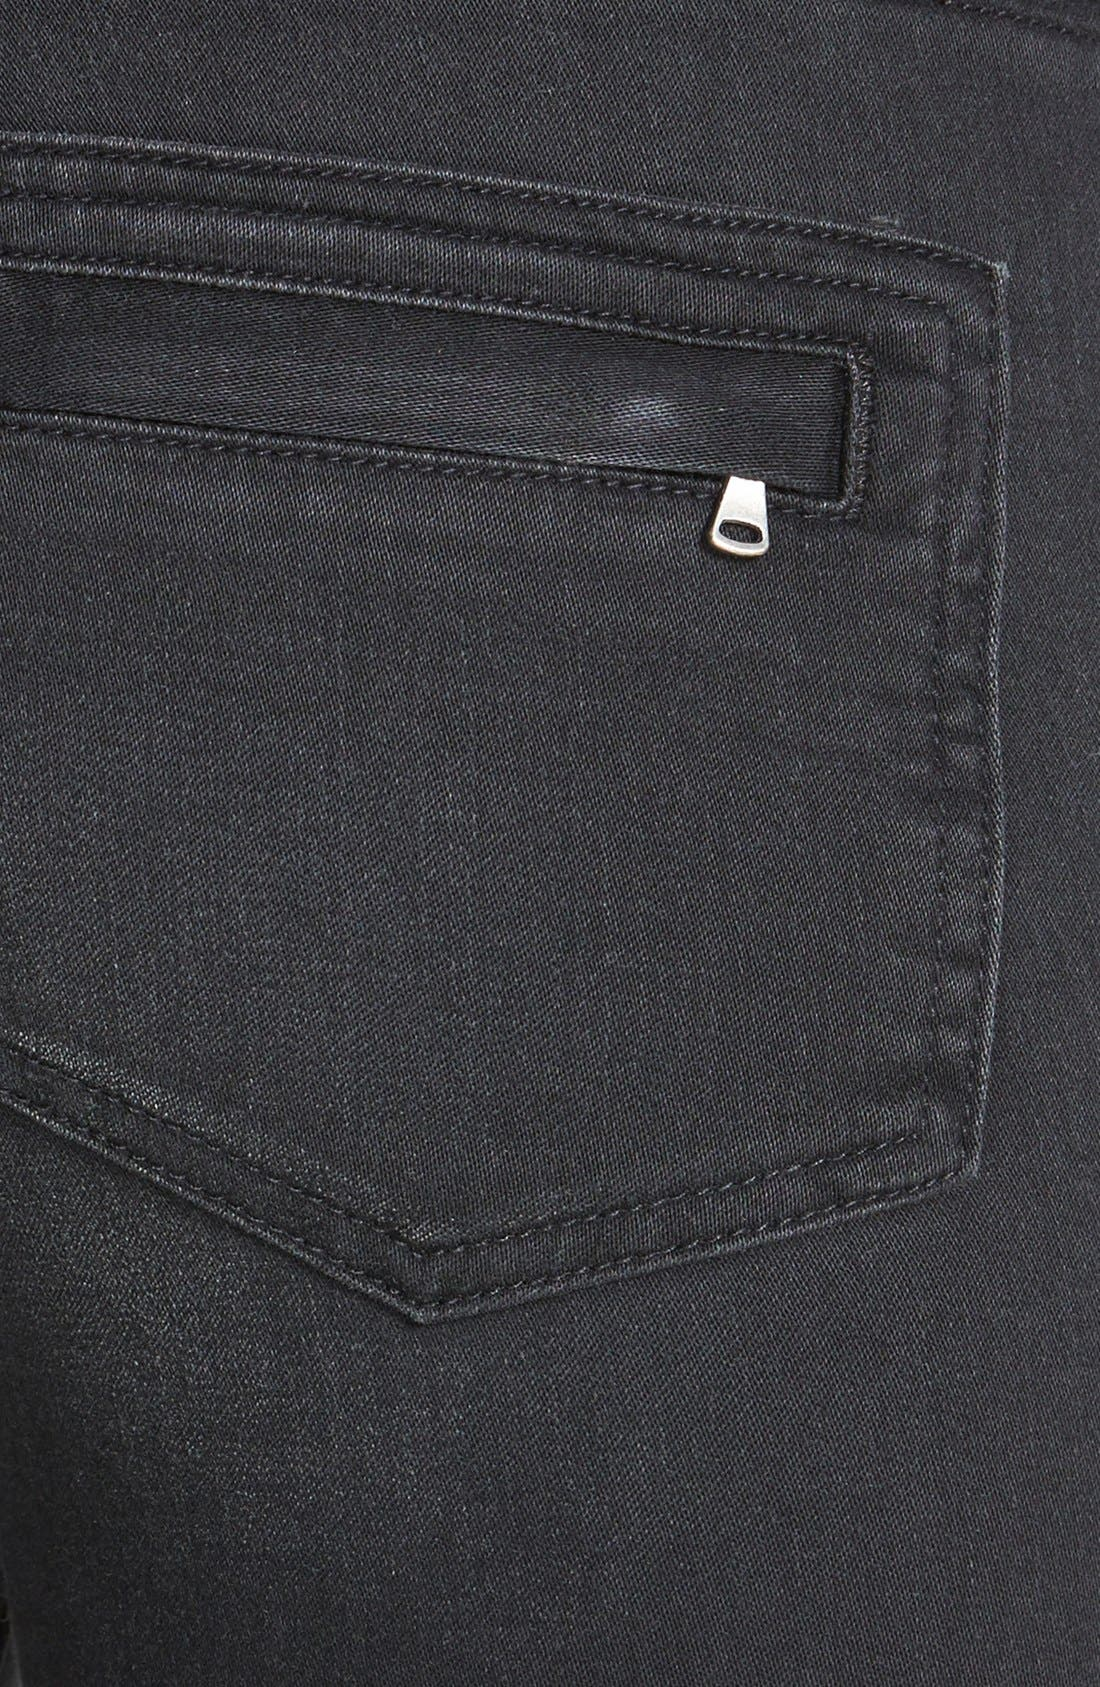 Alternate Image 3  - Paige Denim 'Harlem' Leather Detail Ultra Skinny Jeans (Moscow No Whiskers)